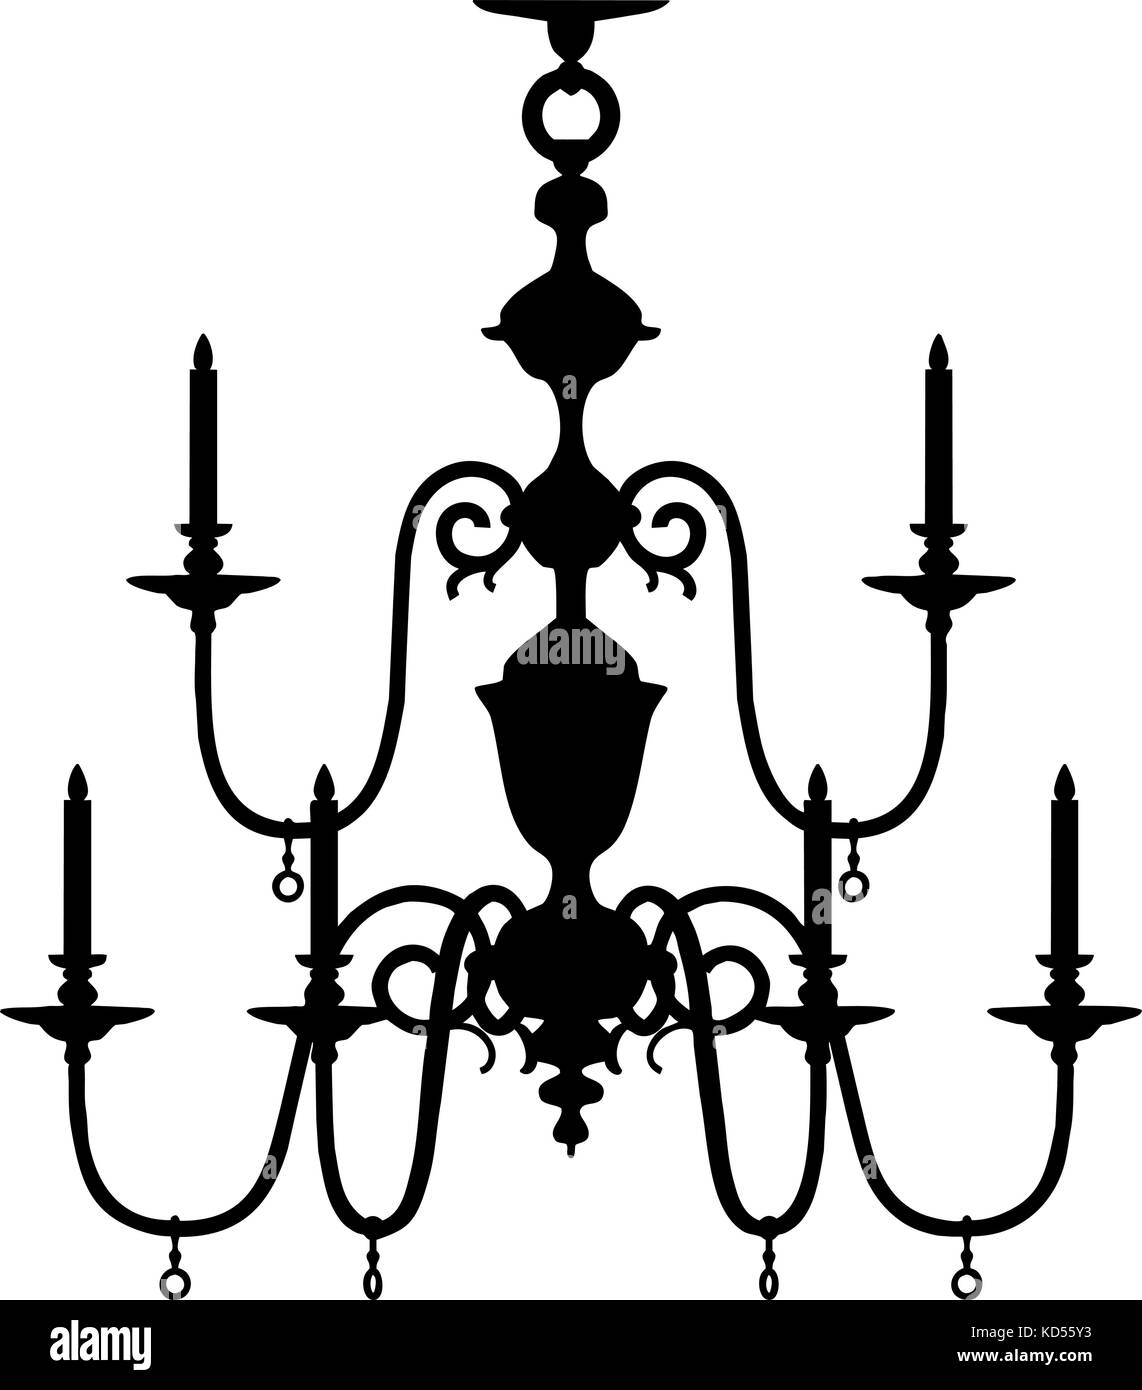 Luster Black and White Stock Photos & Images - Alamy